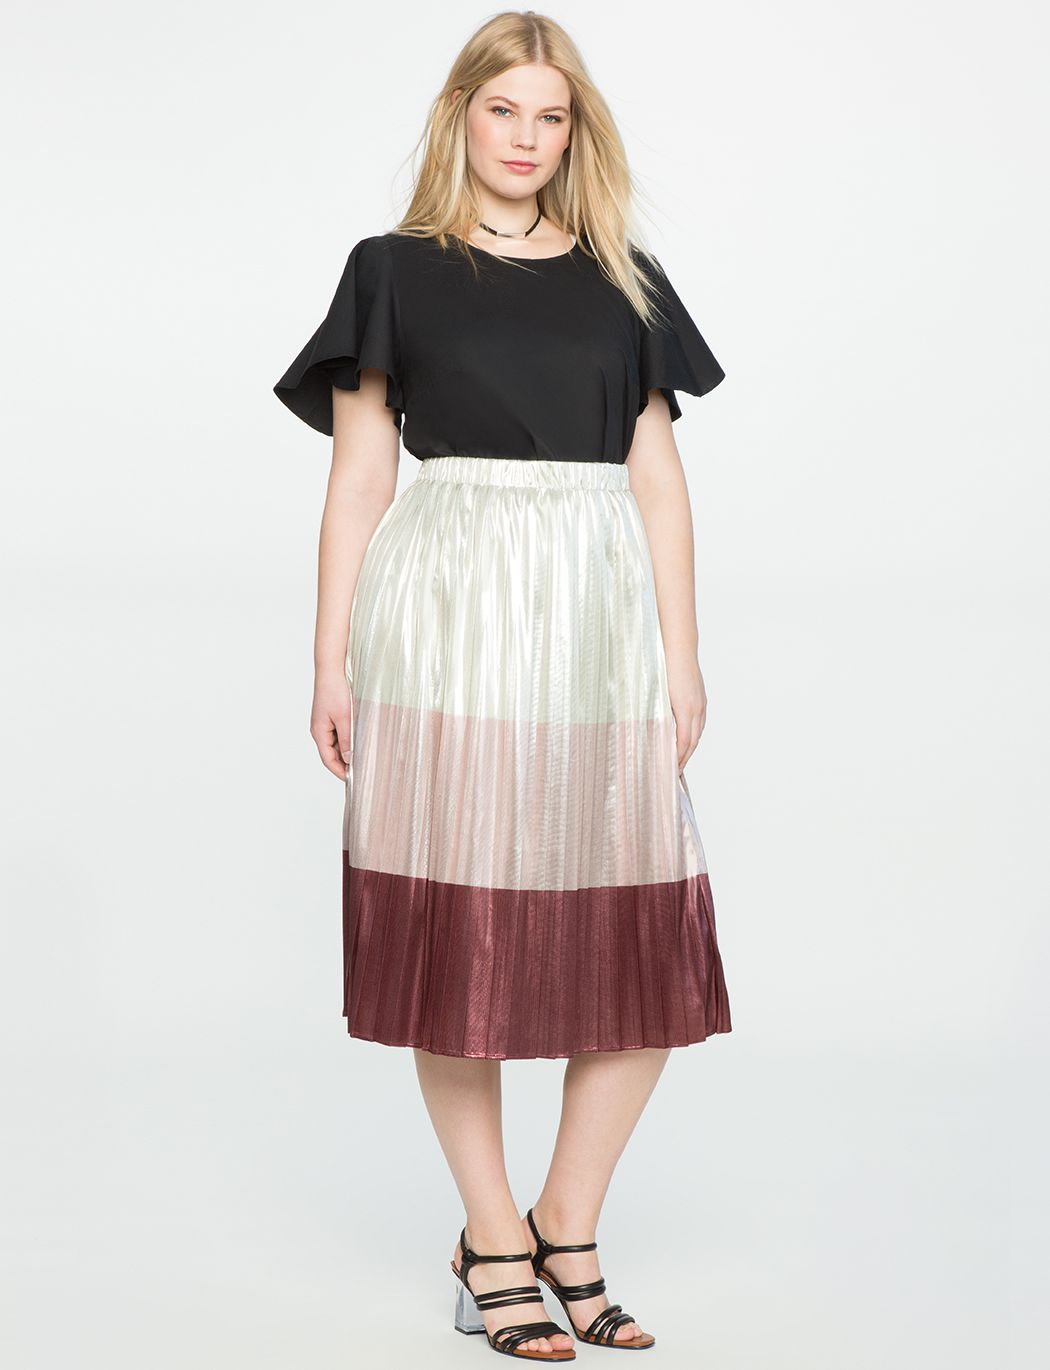 A model in a black tee and metallic skirt